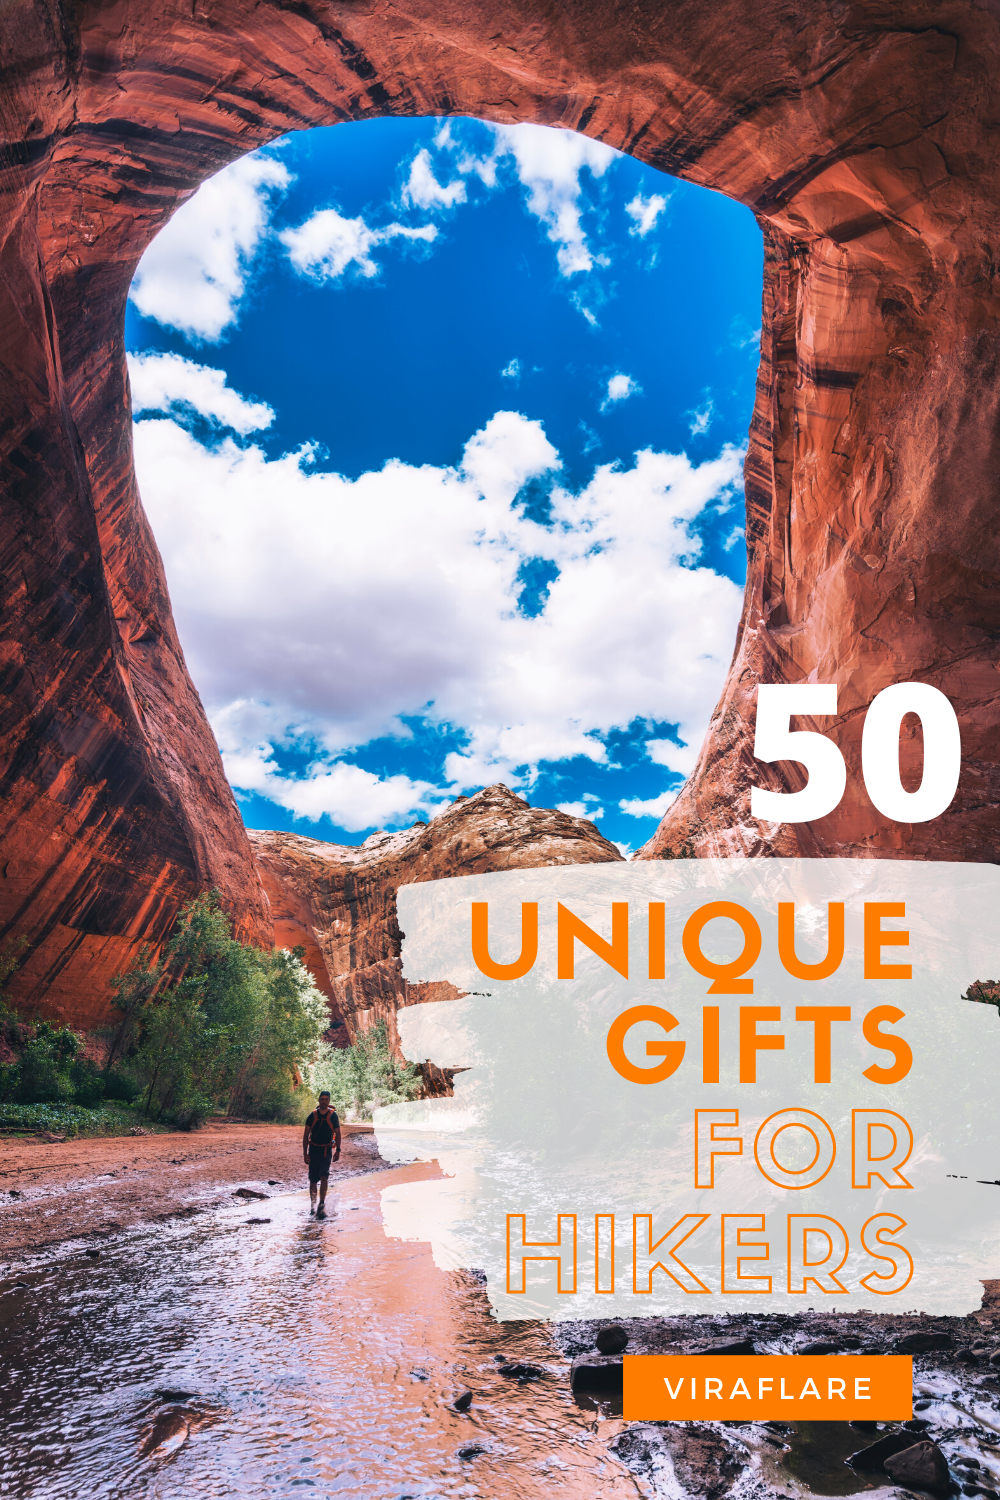 Best hiking gifts